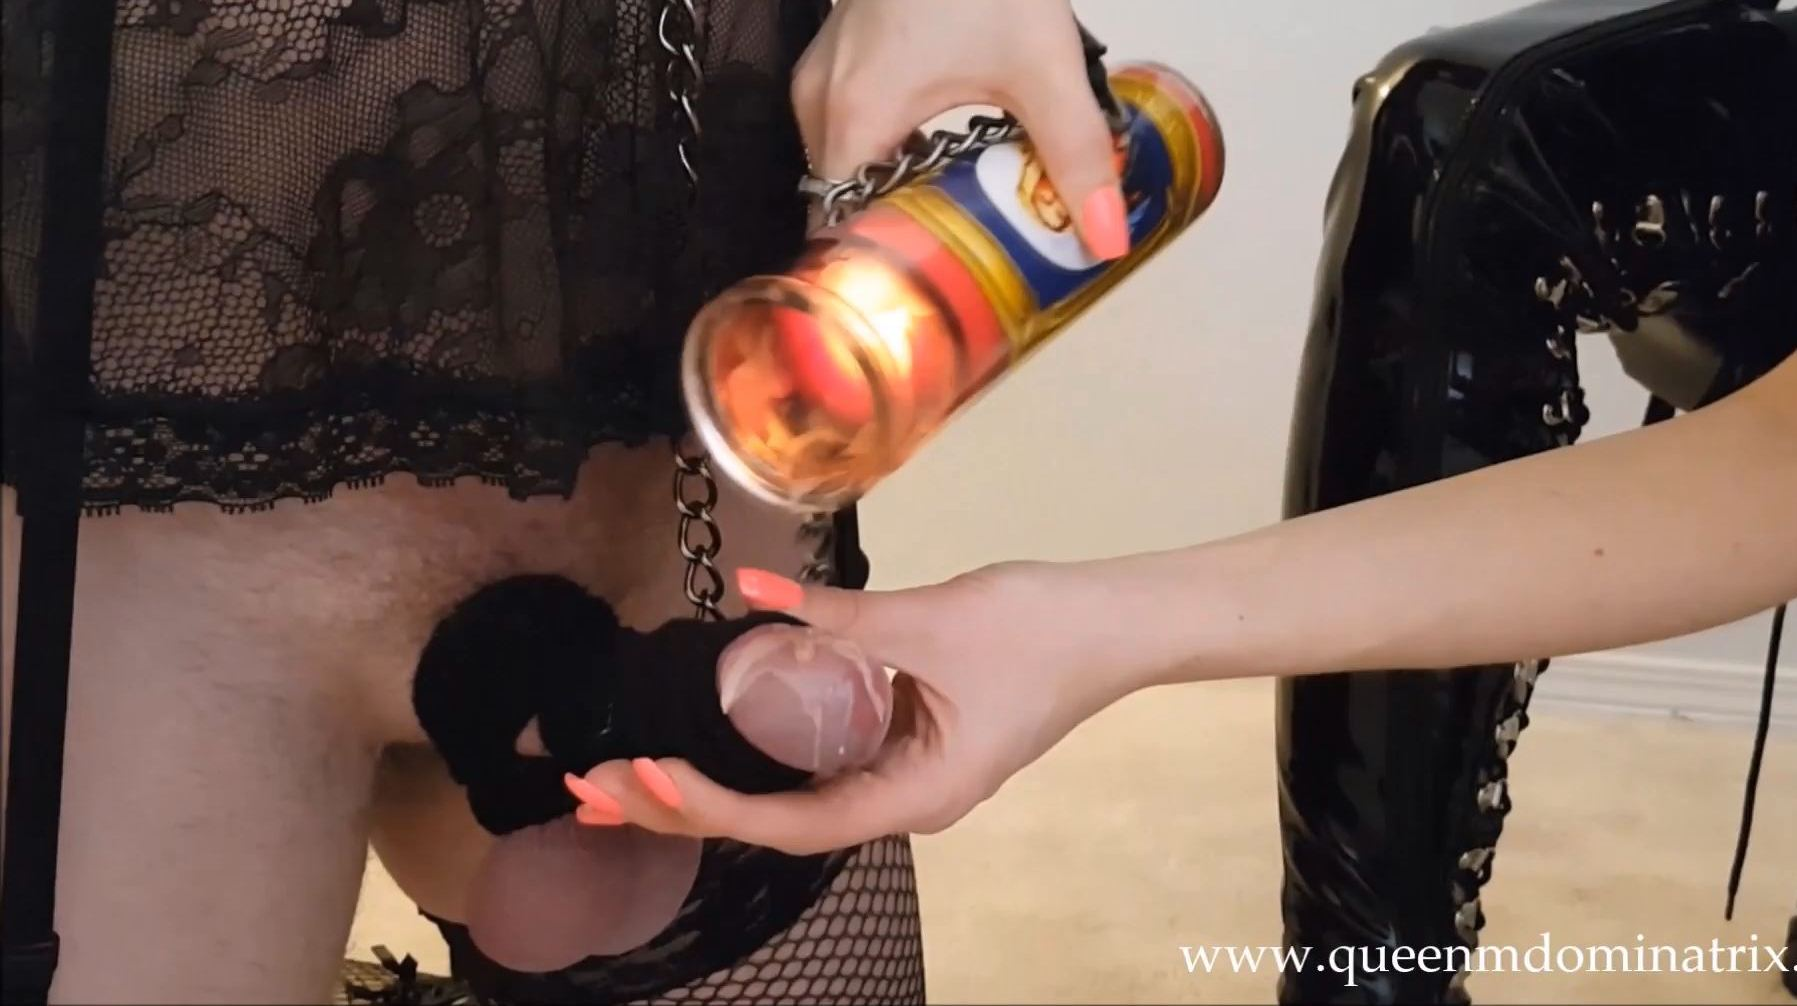 Queen M In Scene: CBT Training By RQM 2 - RUSSIANQUEENM / MANYVIDS - FULL HD/1080p/MP4